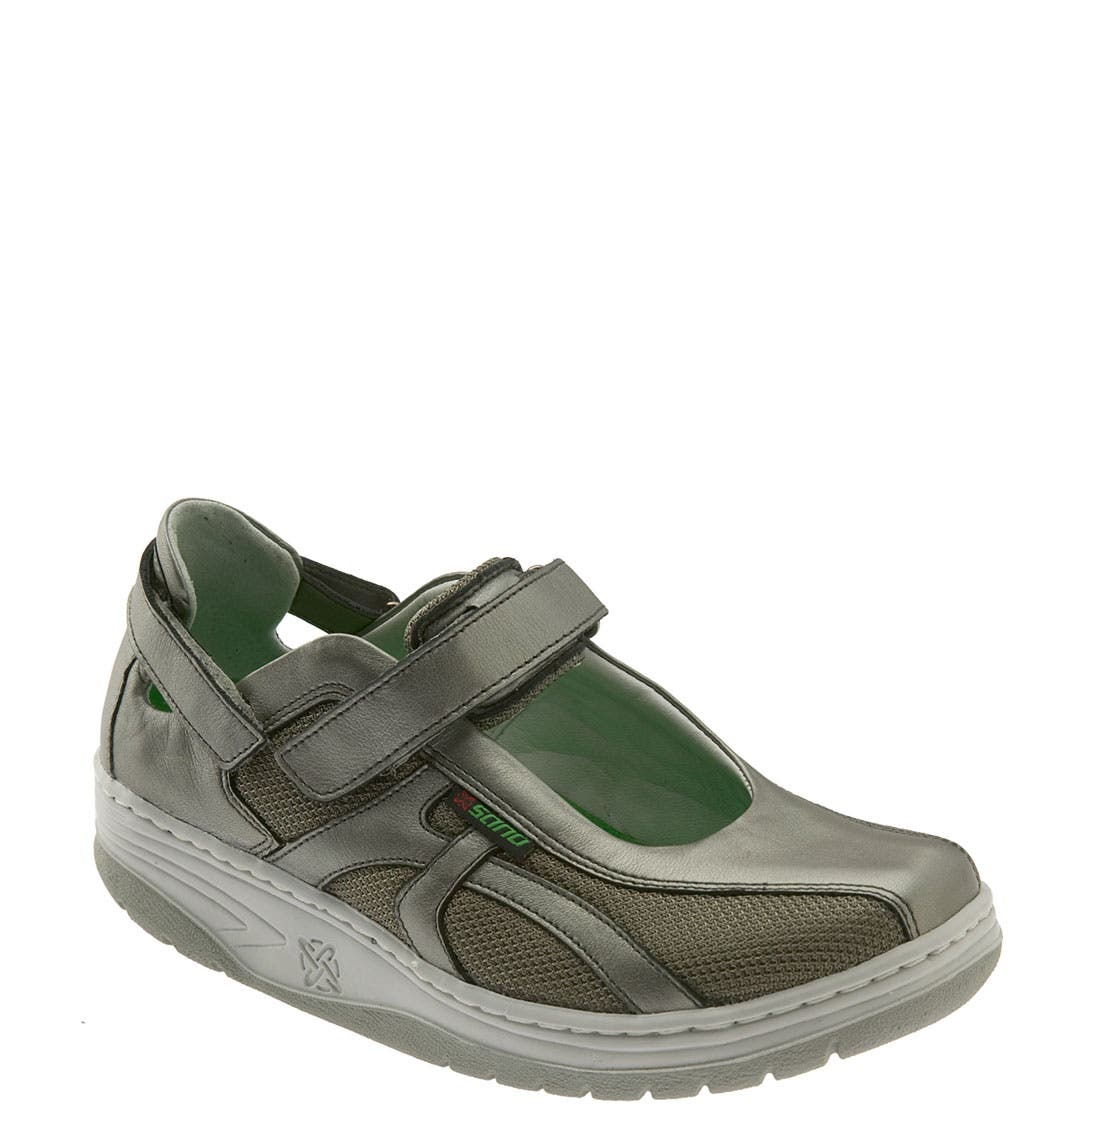 Sano by Mephisto 'Excess' Walking Shoe,                         Main,                         color,